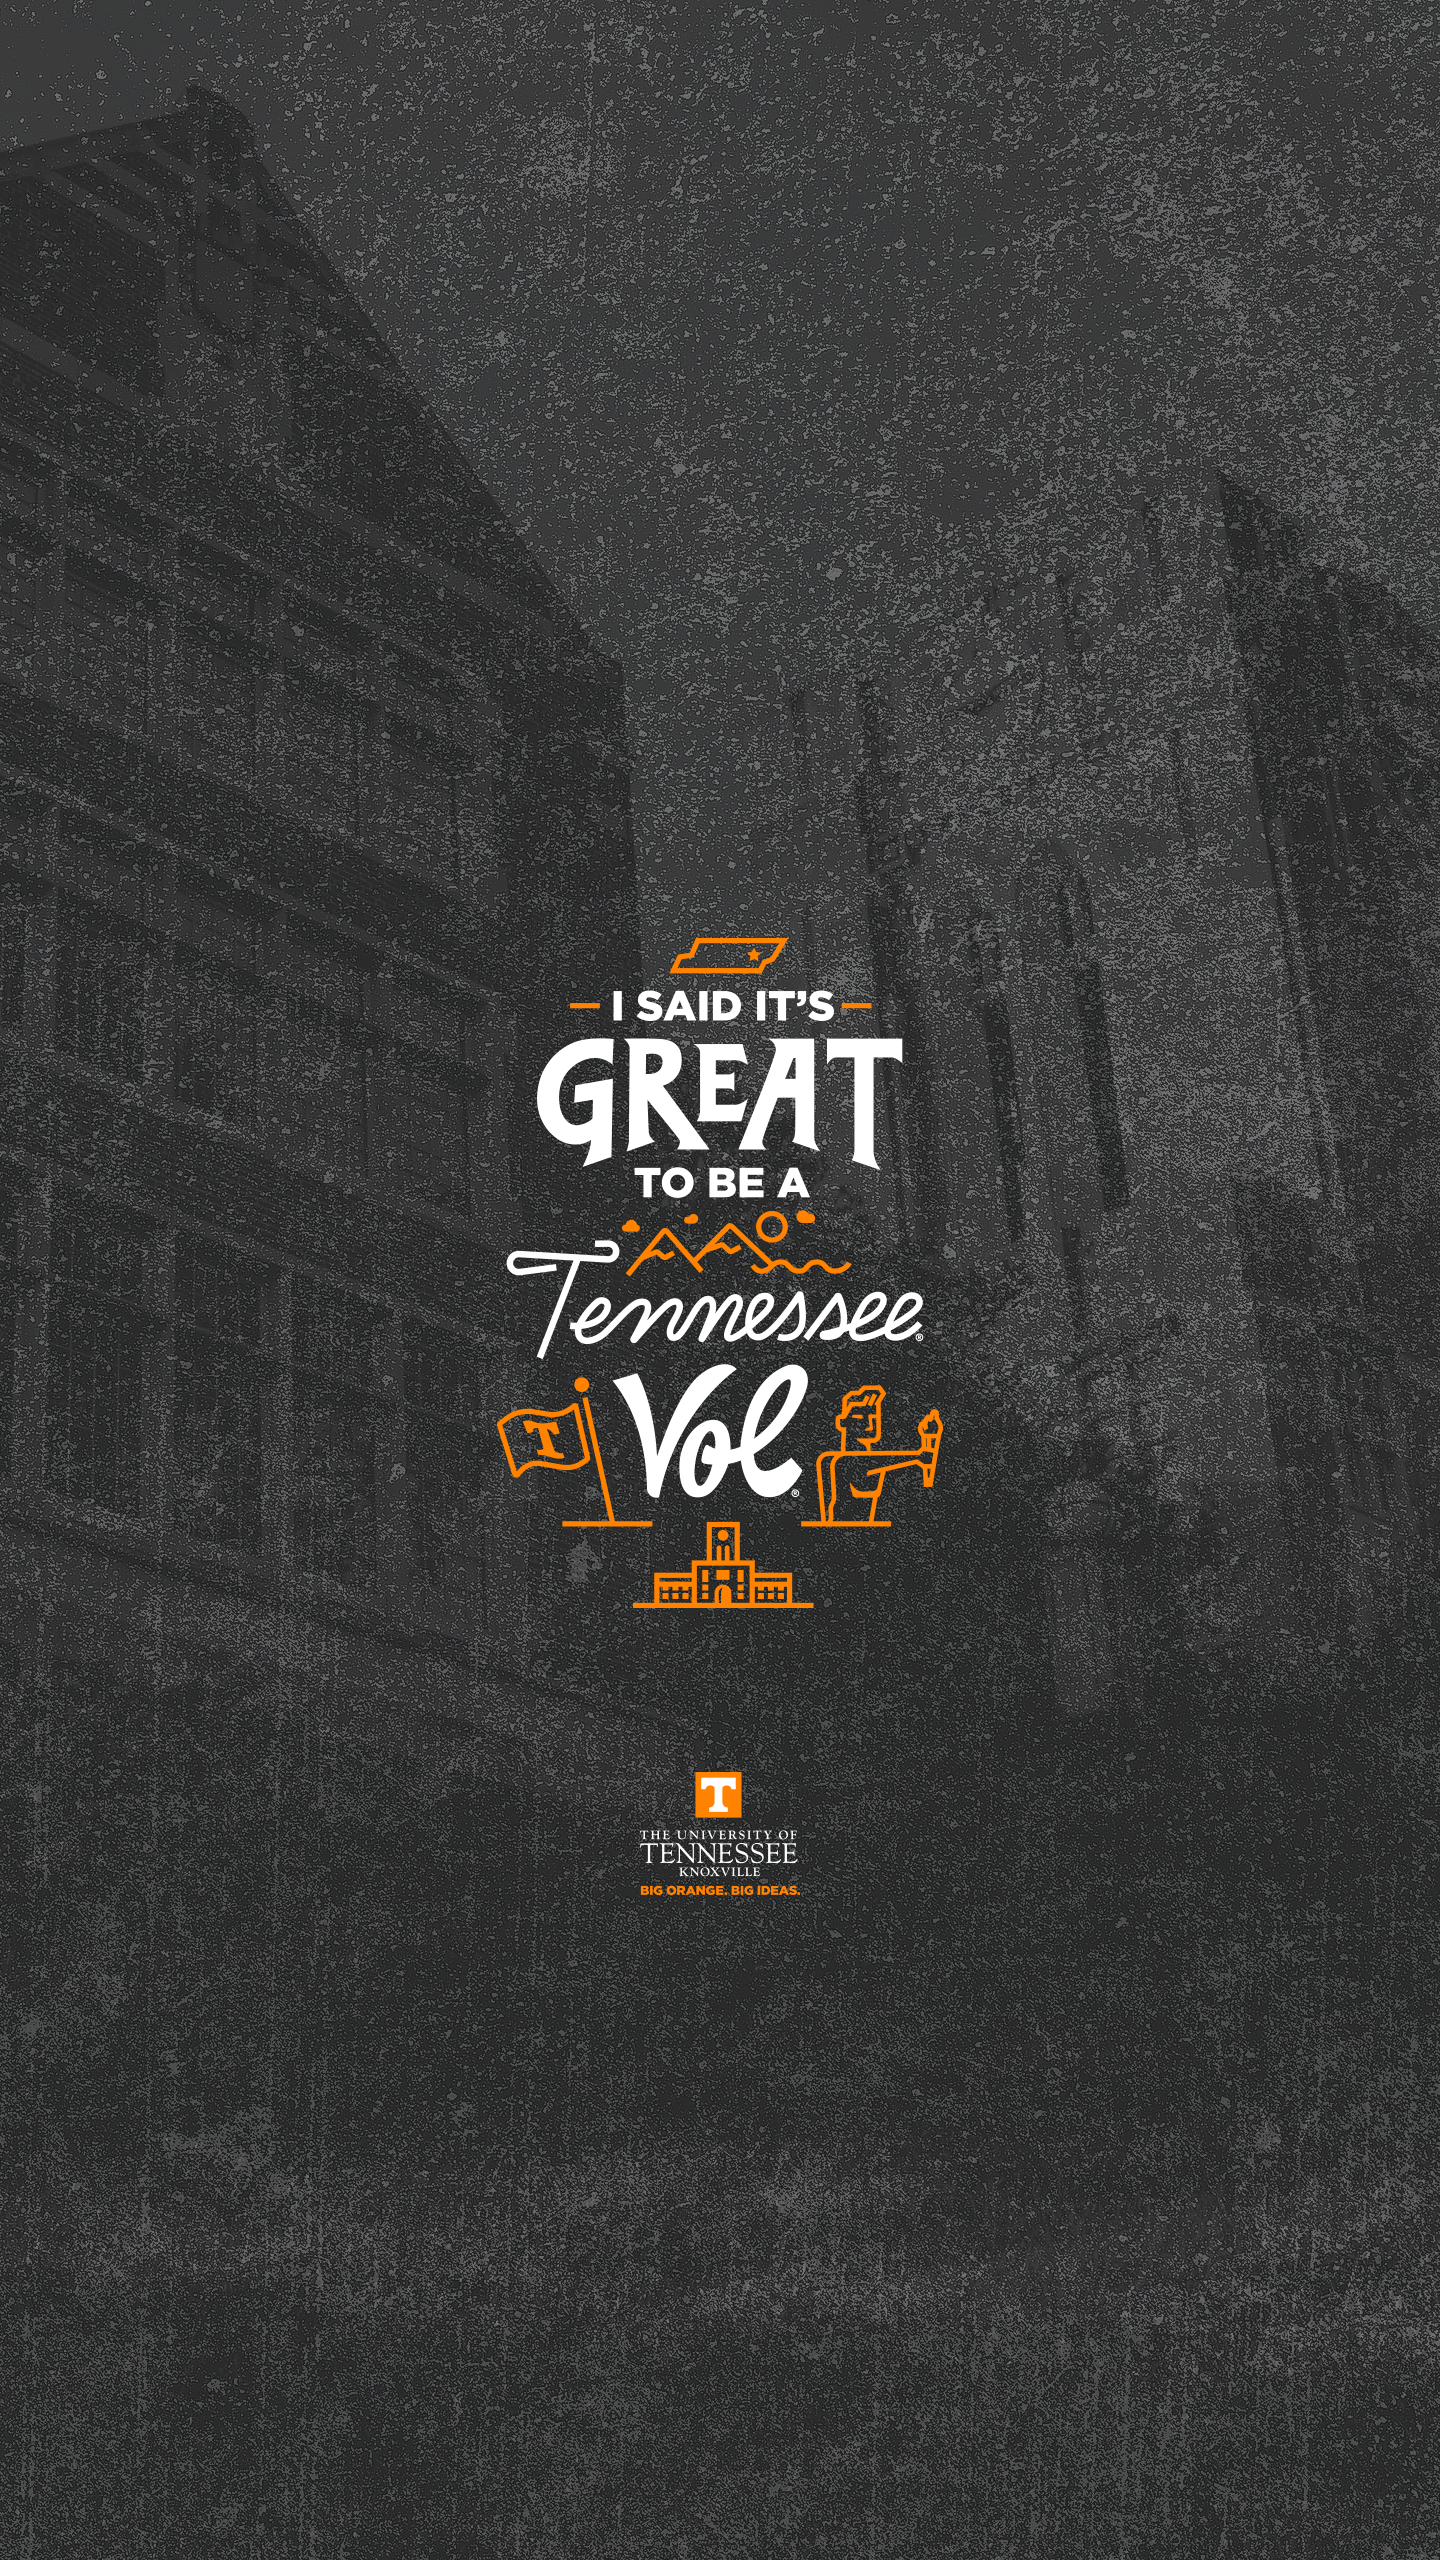 University Of Tn Wallpaper Posted By Ethan Cunningham